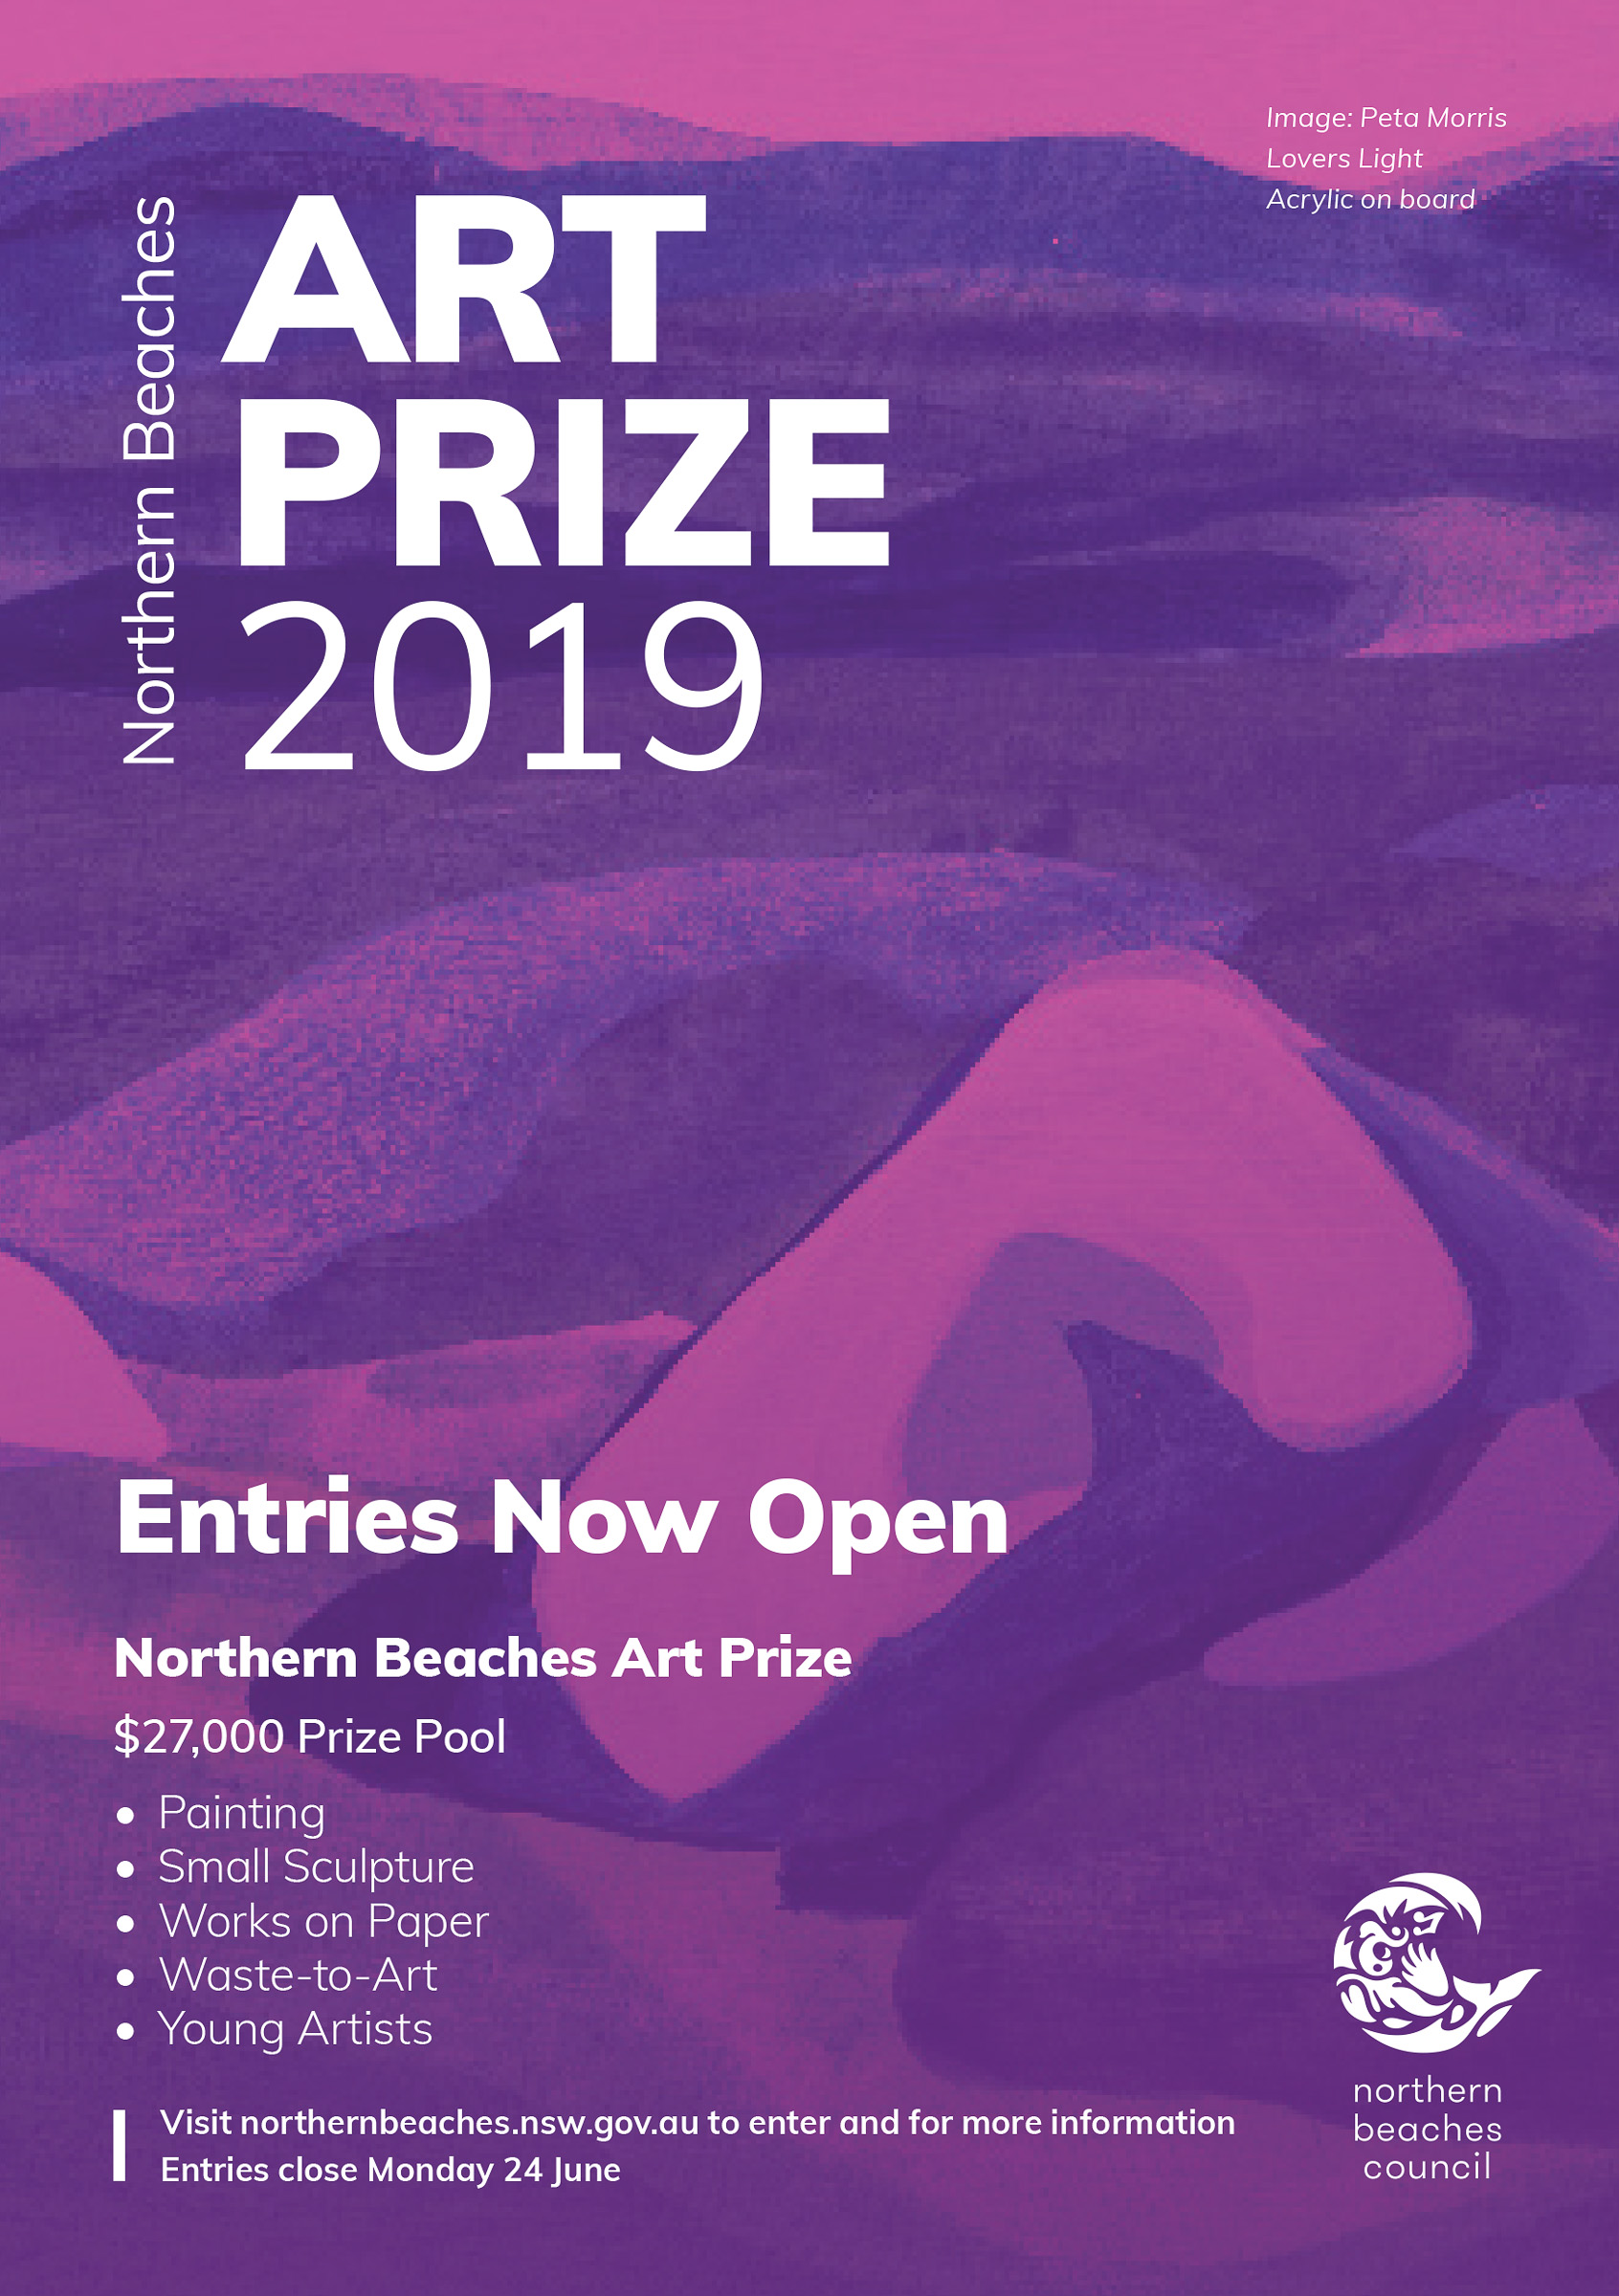 Northern Beaches Art Prize 2019 Flyer